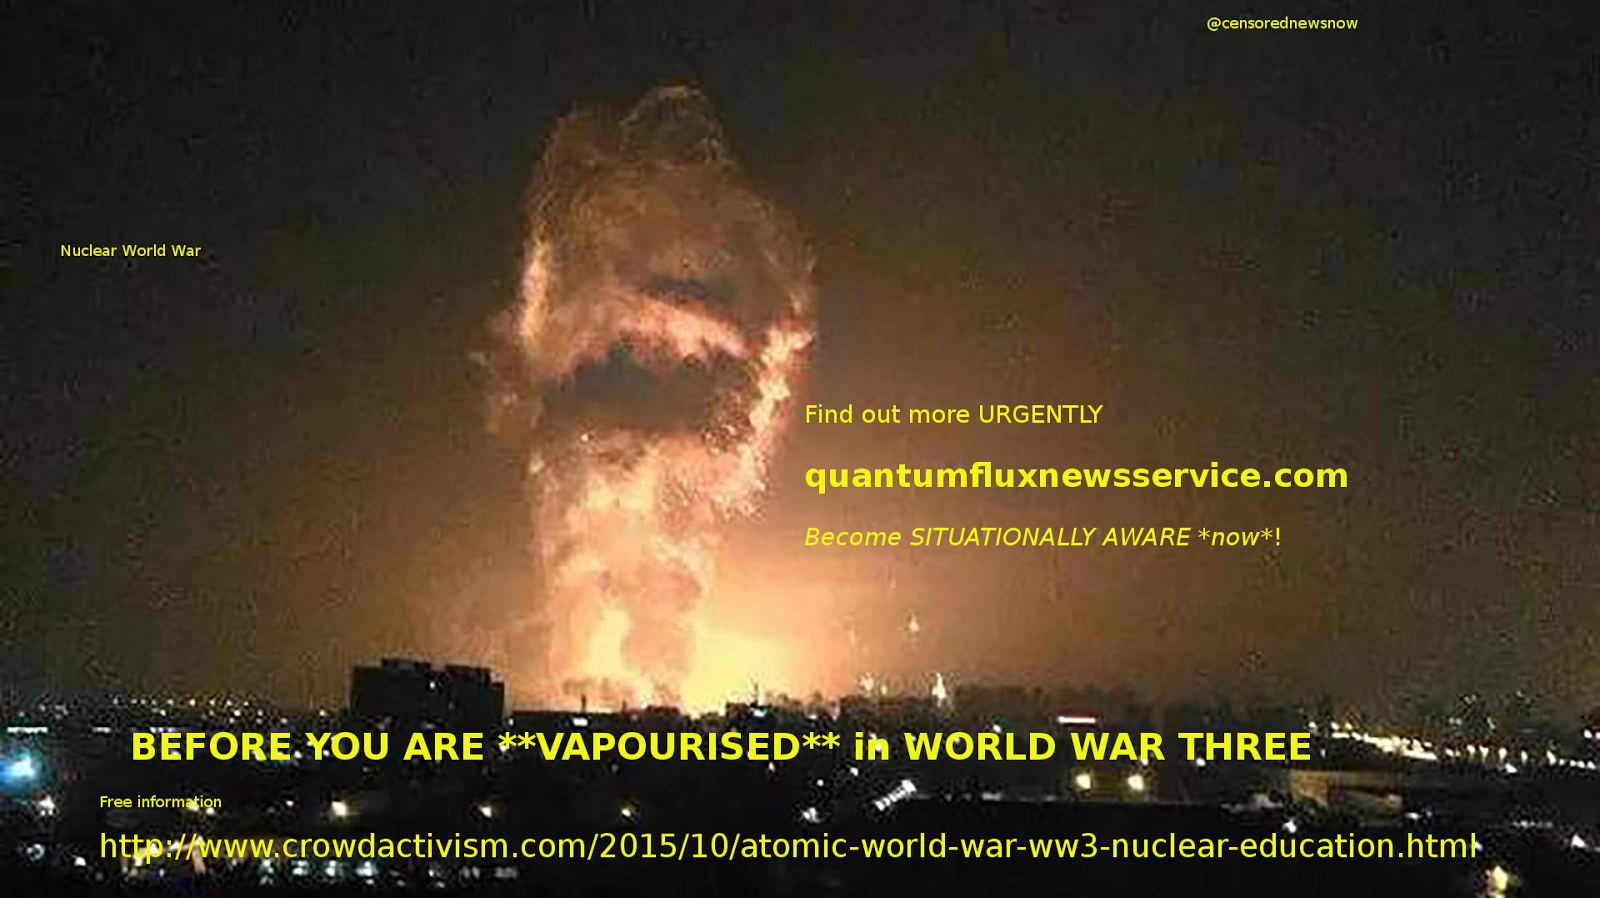 URGENT - Decide! SURVIVE WW3!